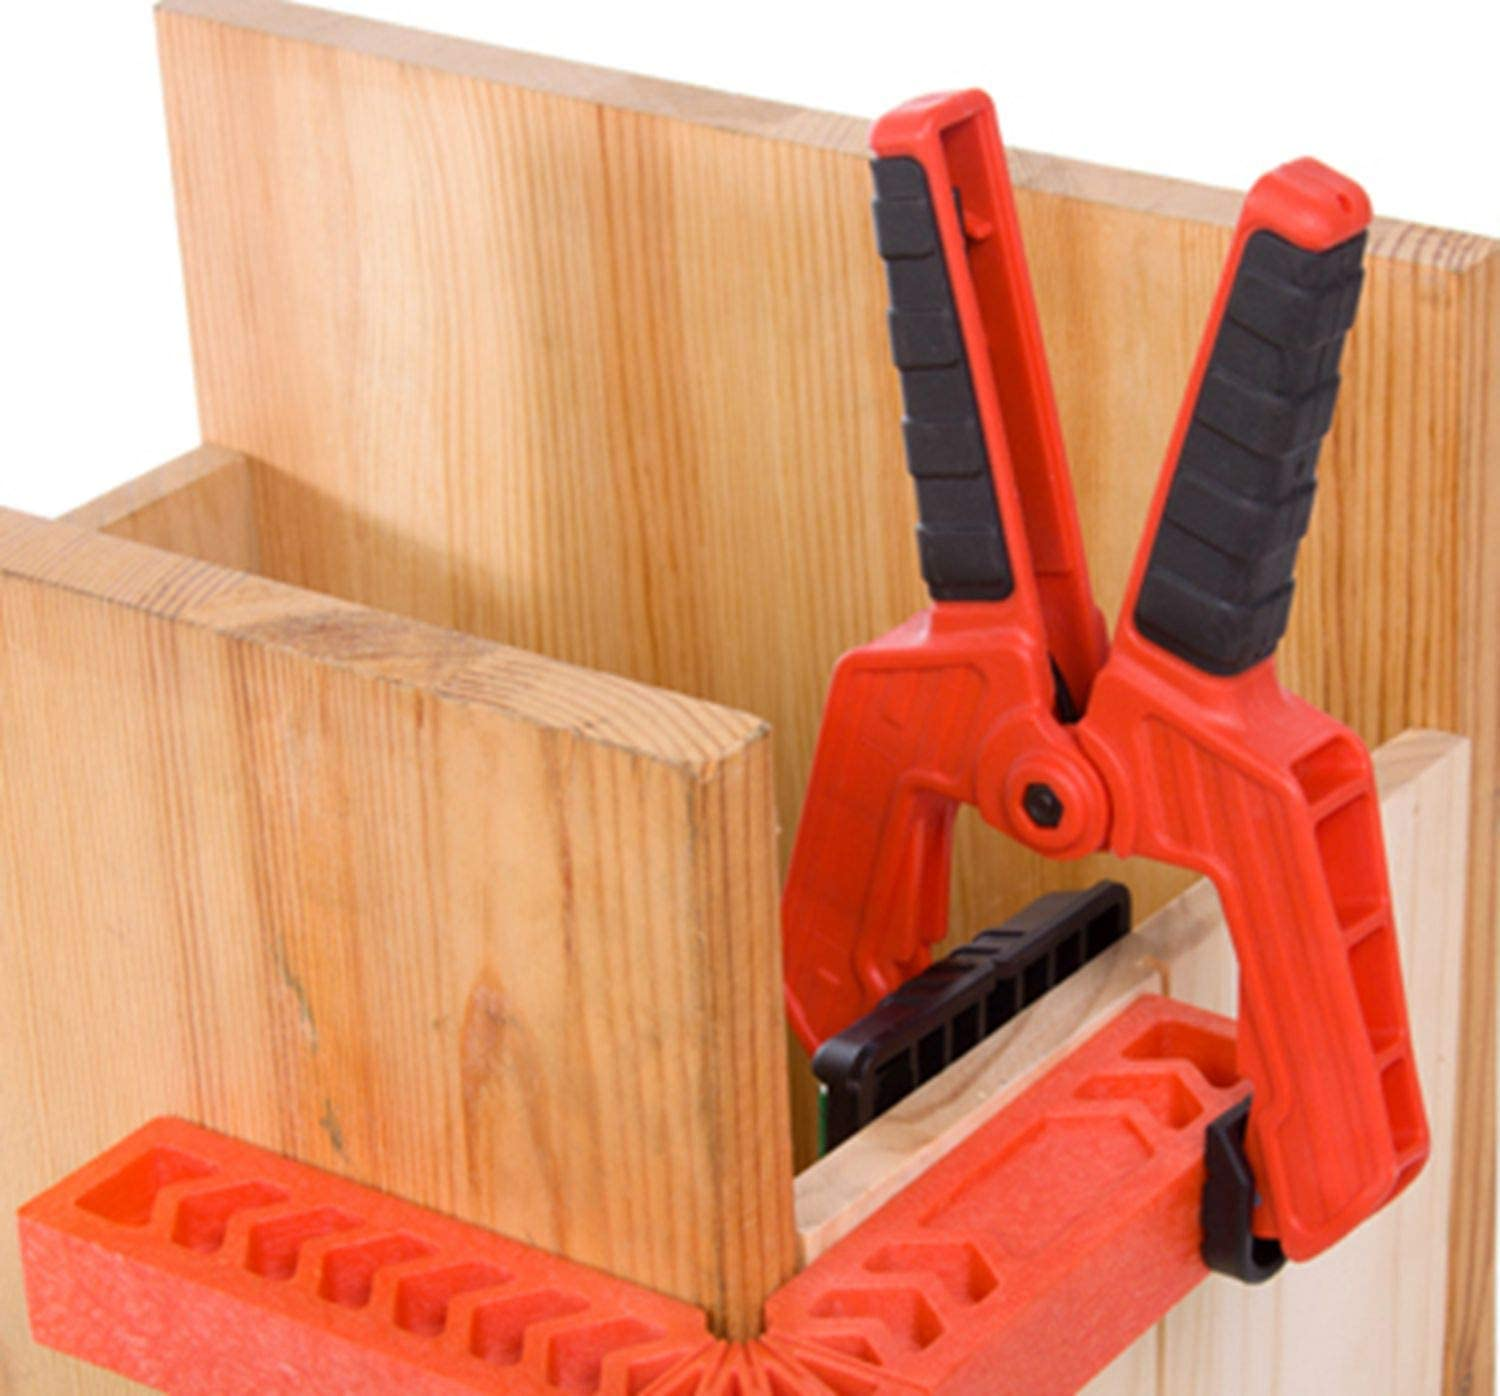 Fladess Woodworking Project Kits Hand Tools,The 8 Inch Spring Clamps With Set of 2 and 8 Inch Positioning Squares With Set of 2 Red Squares